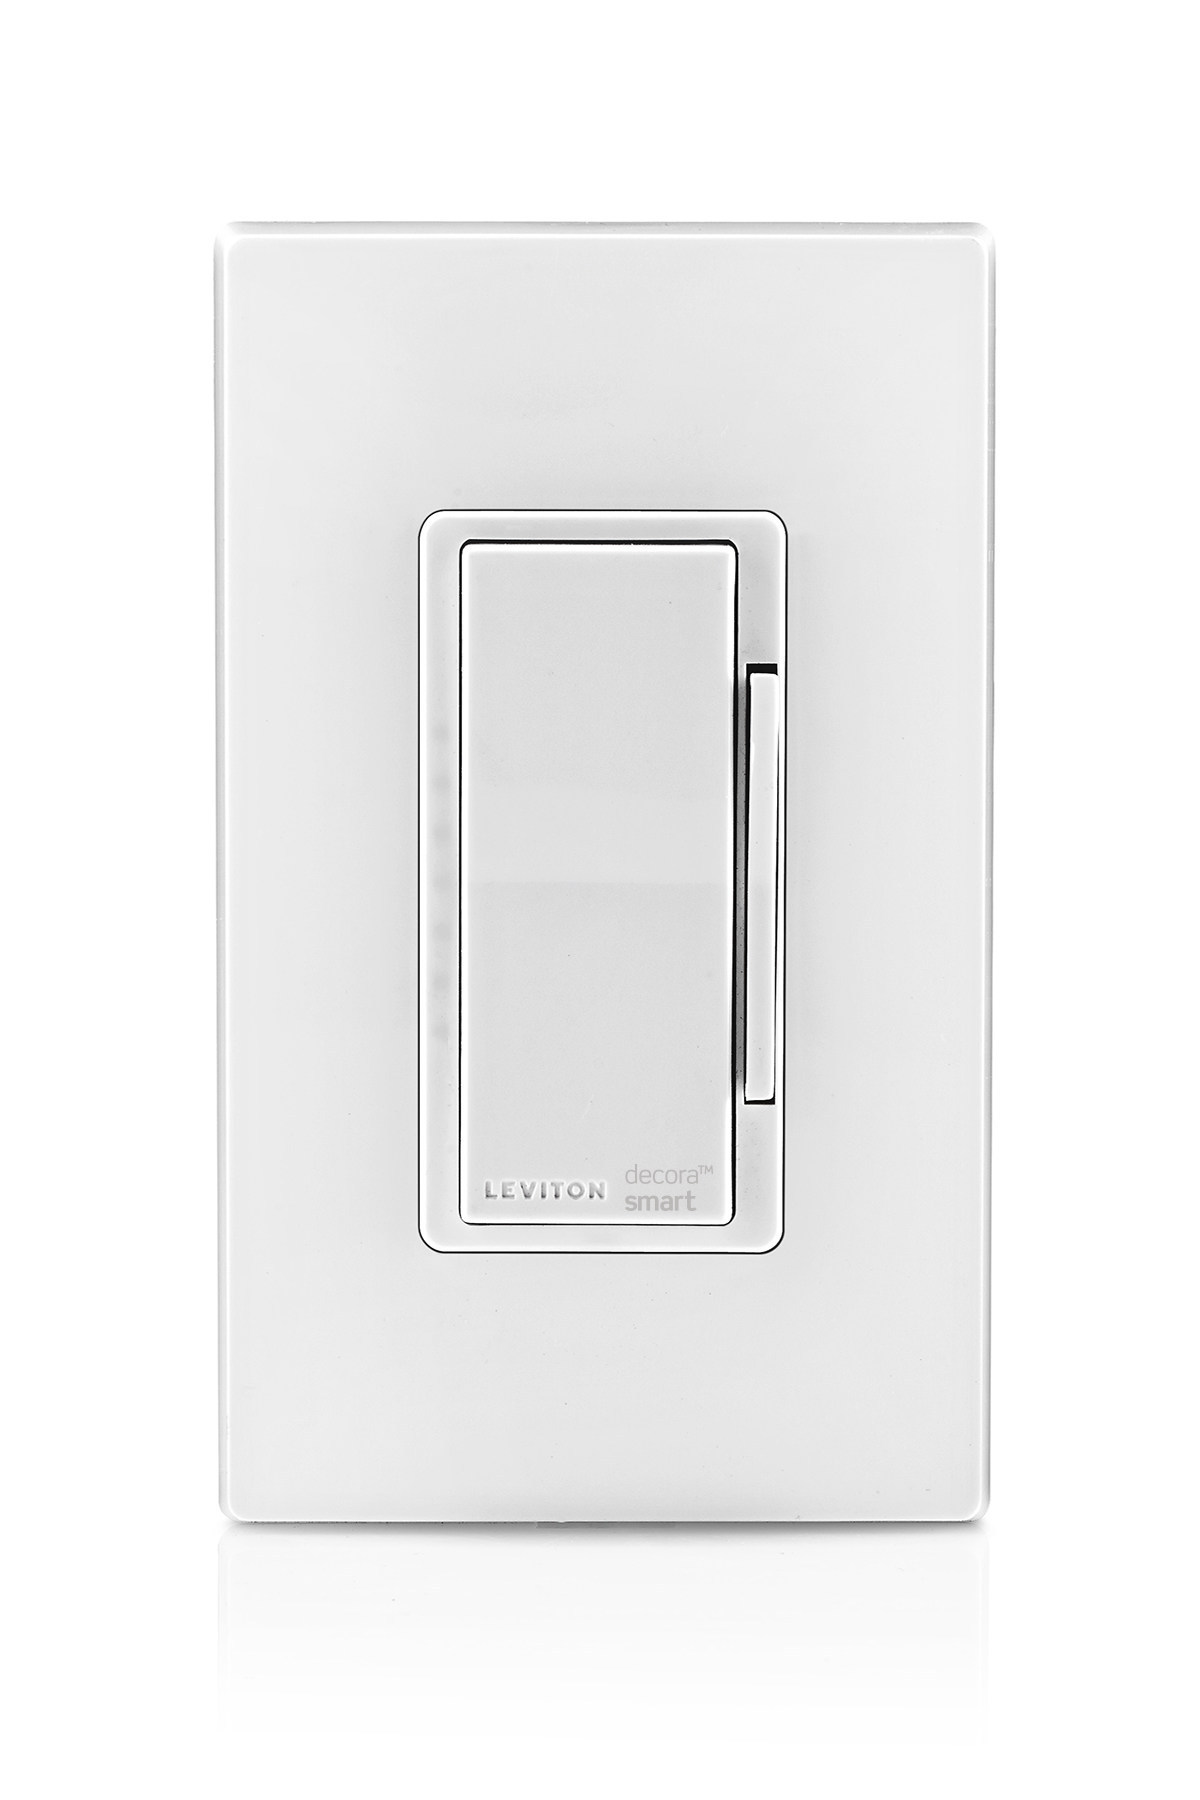 leviton announces decora smart in wall dimmers and switches with apple homekit support. Black Bedroom Furniture Sets. Home Design Ideas